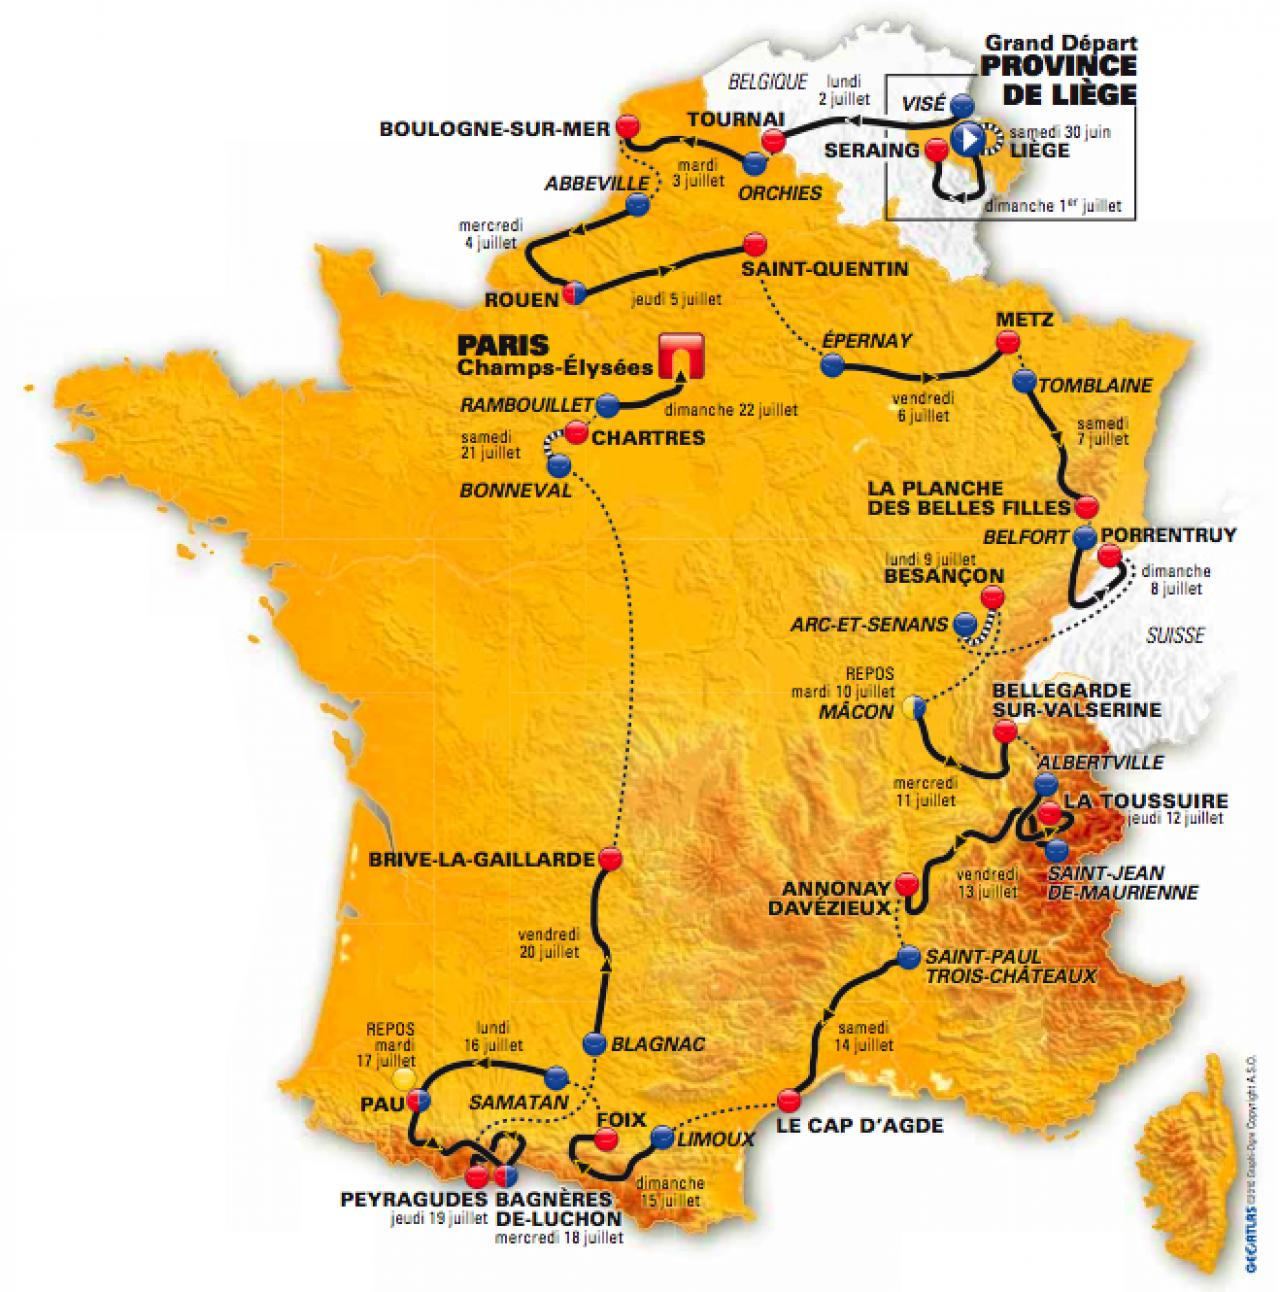 Tour de france 2021 stage 14 betting advice getafe vs betis betting preview on betfair